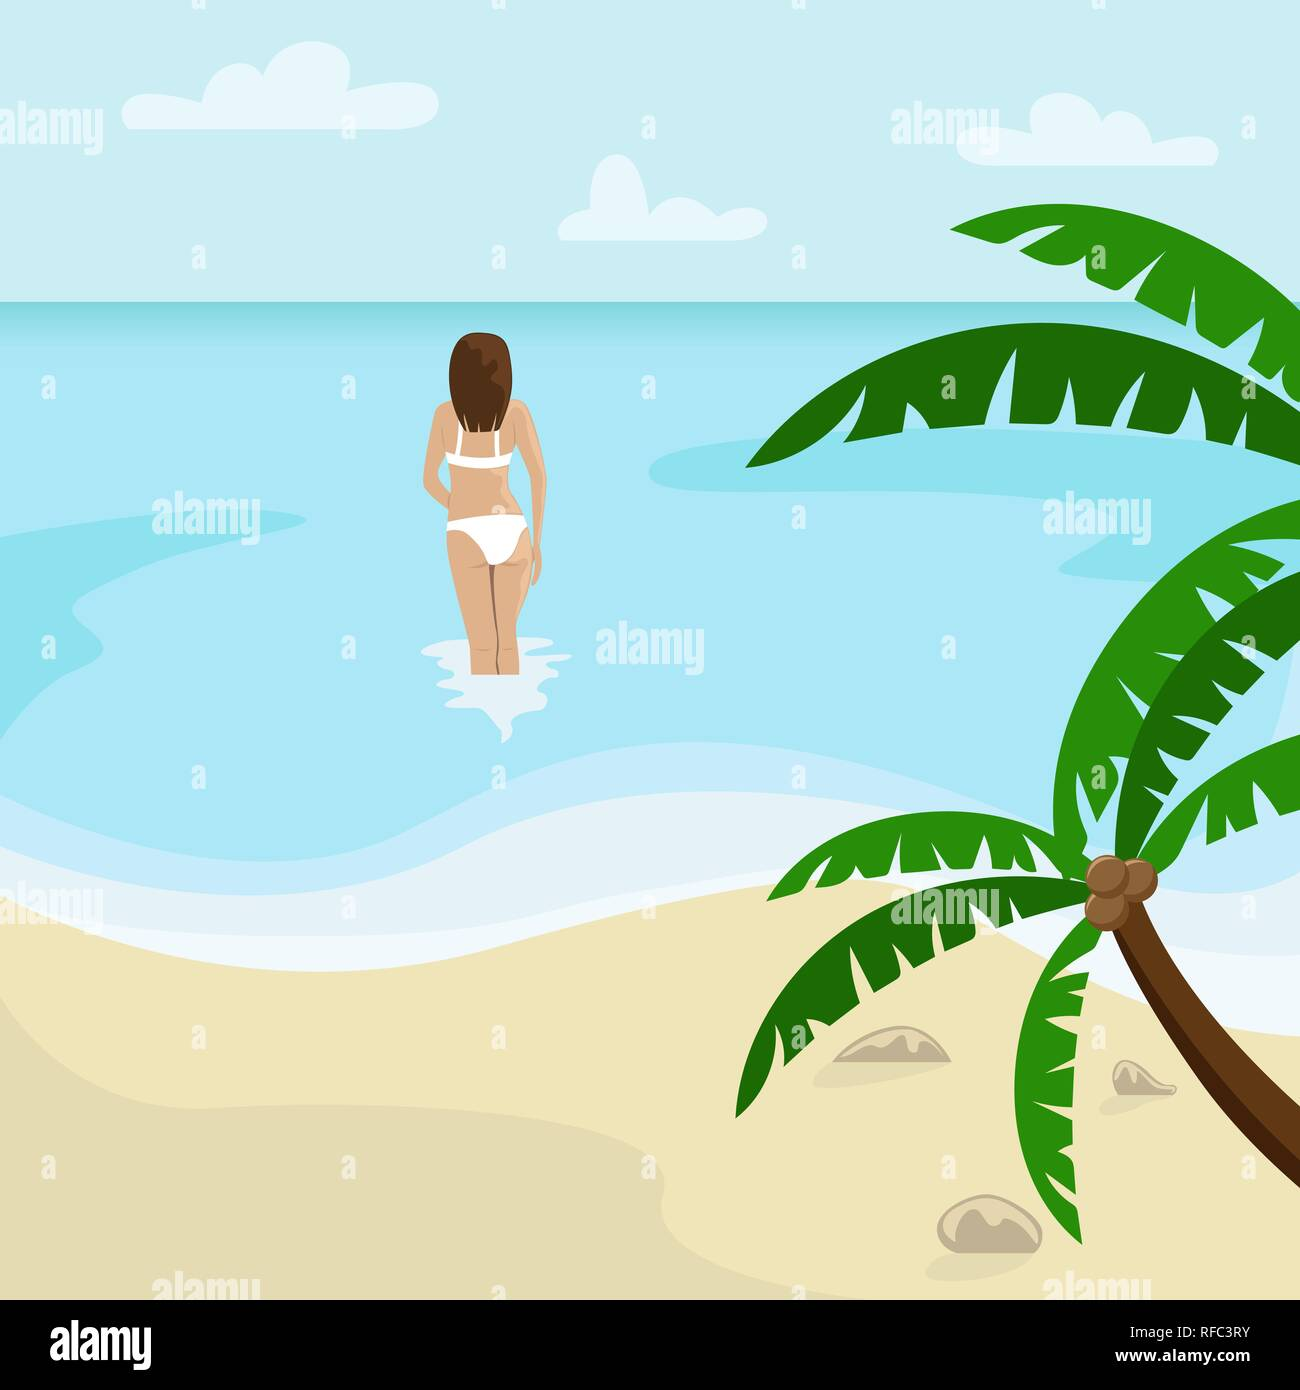 Beach landscape with palm trees. Girl in a swimsuit is in the sea. Flat vector illustration. - Stock Image